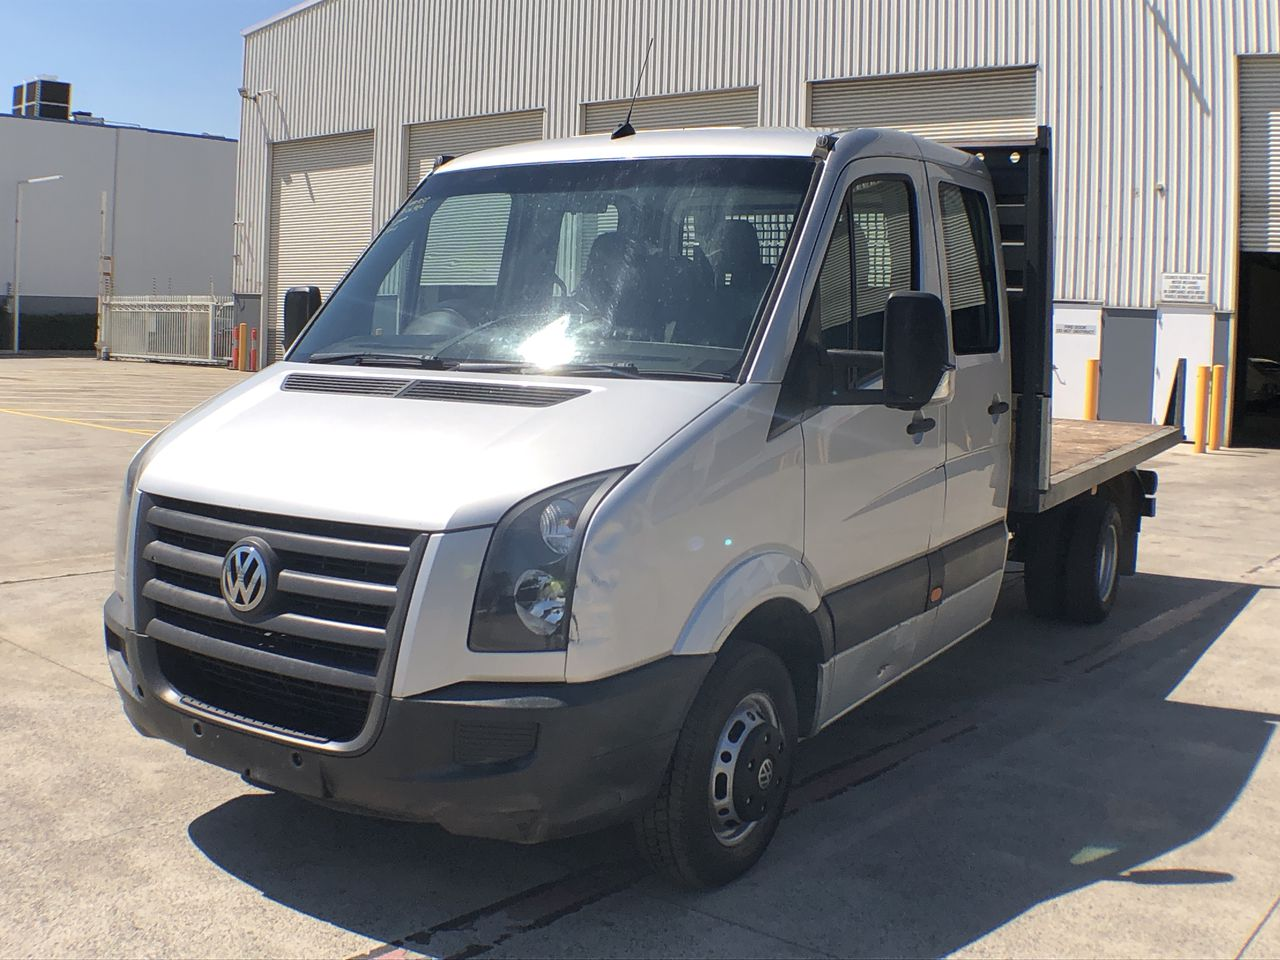 Volkswagen Crafter 50 LWB Turbo Diesel Manual 7 Seats Crew Cab Chassis